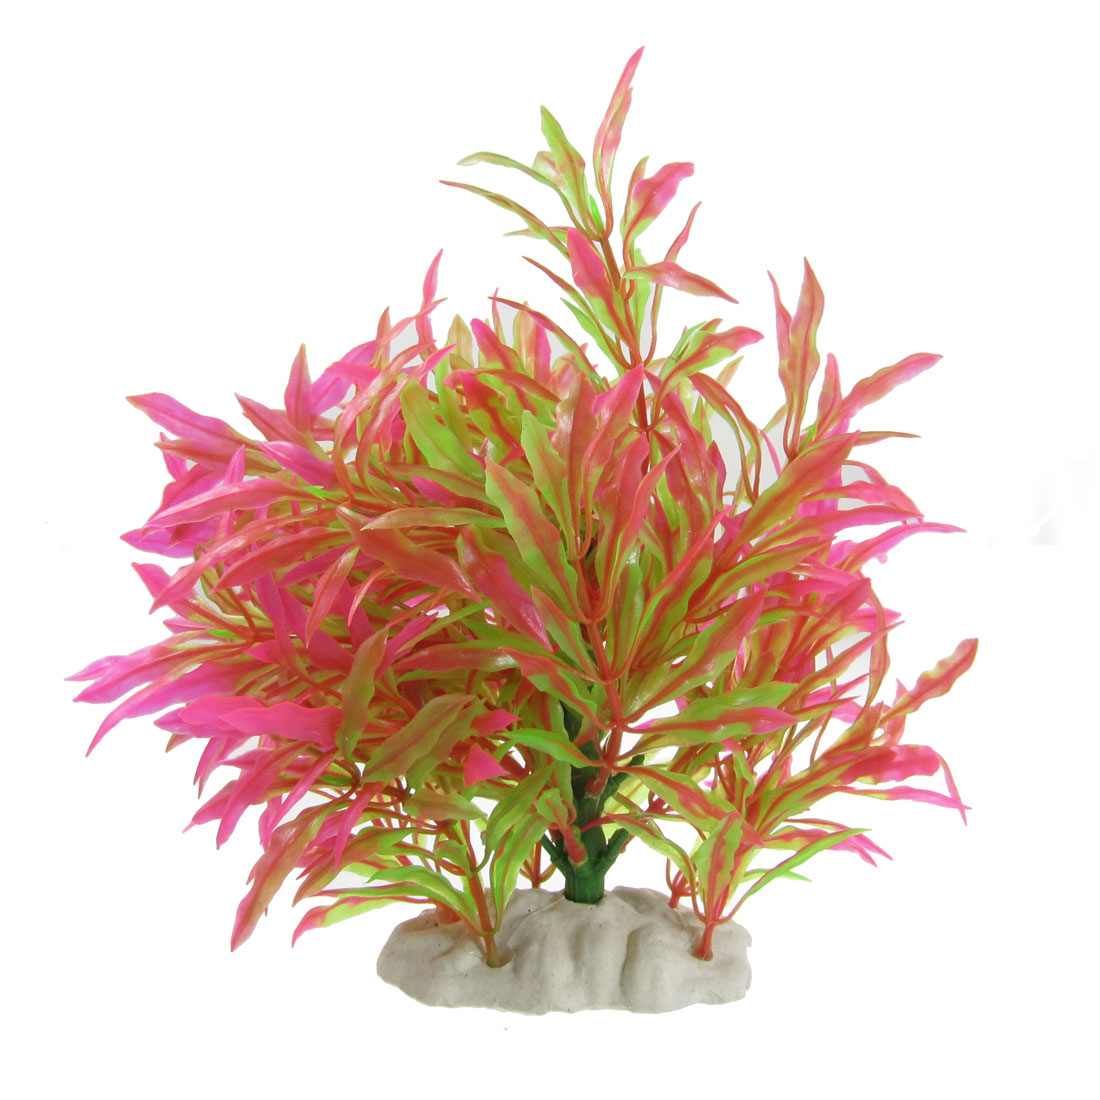 "7.1"" Height Artificial Aquatic Plant Shocking Pink Green for Fish Tank"